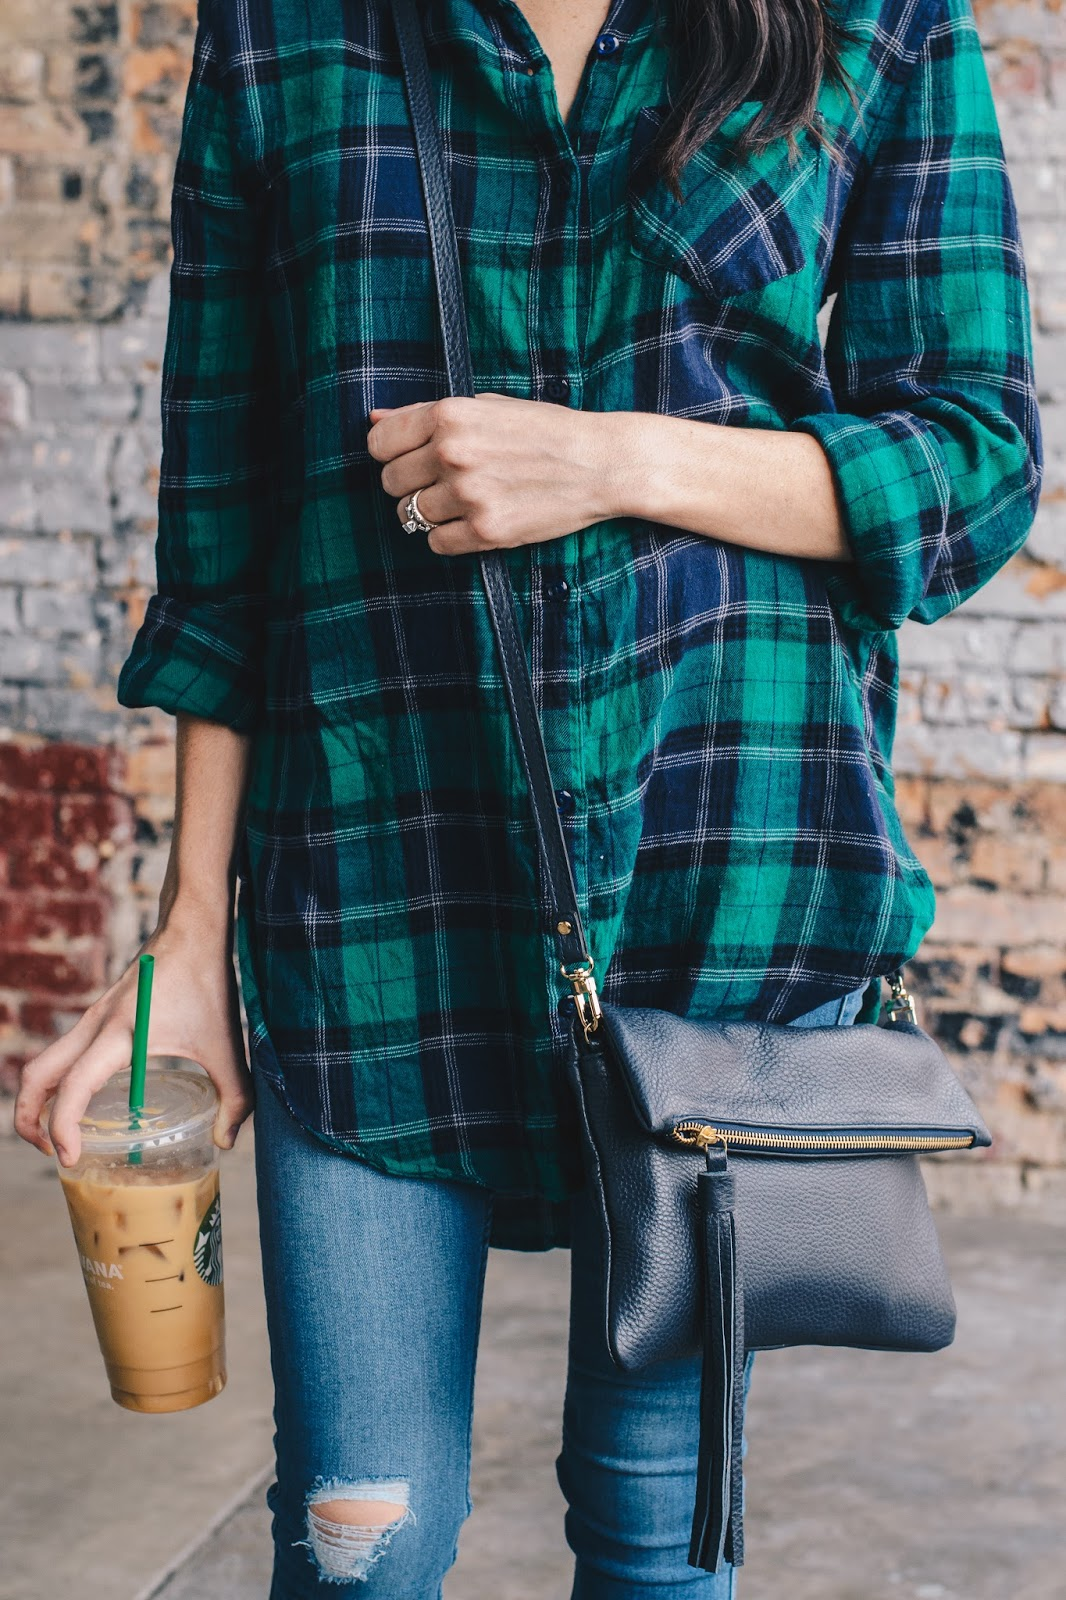 Italian Leather Fringe Cross body Bag and Plaid Top